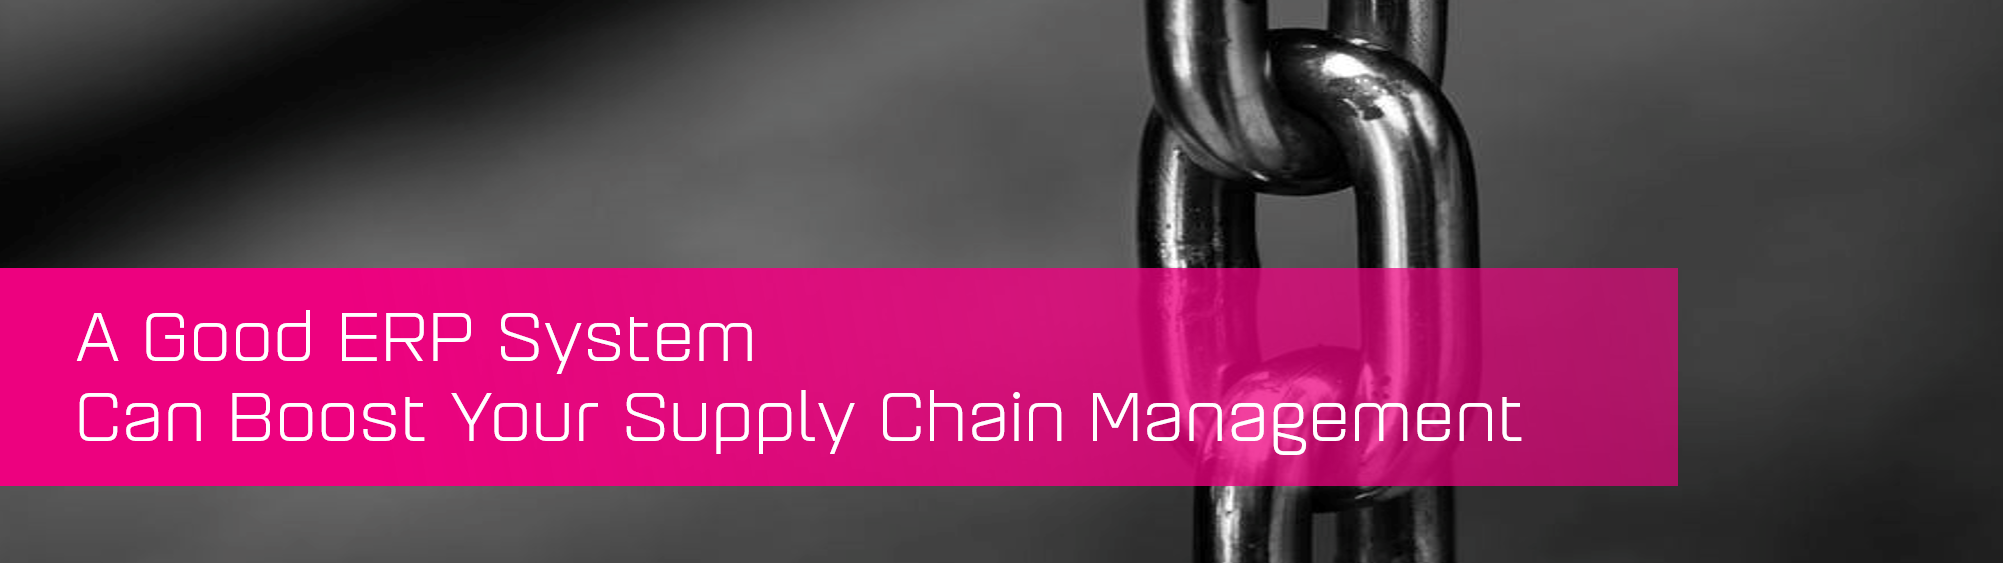 KCS SA - Blog - A Good ERP System boost Supply Chain banner